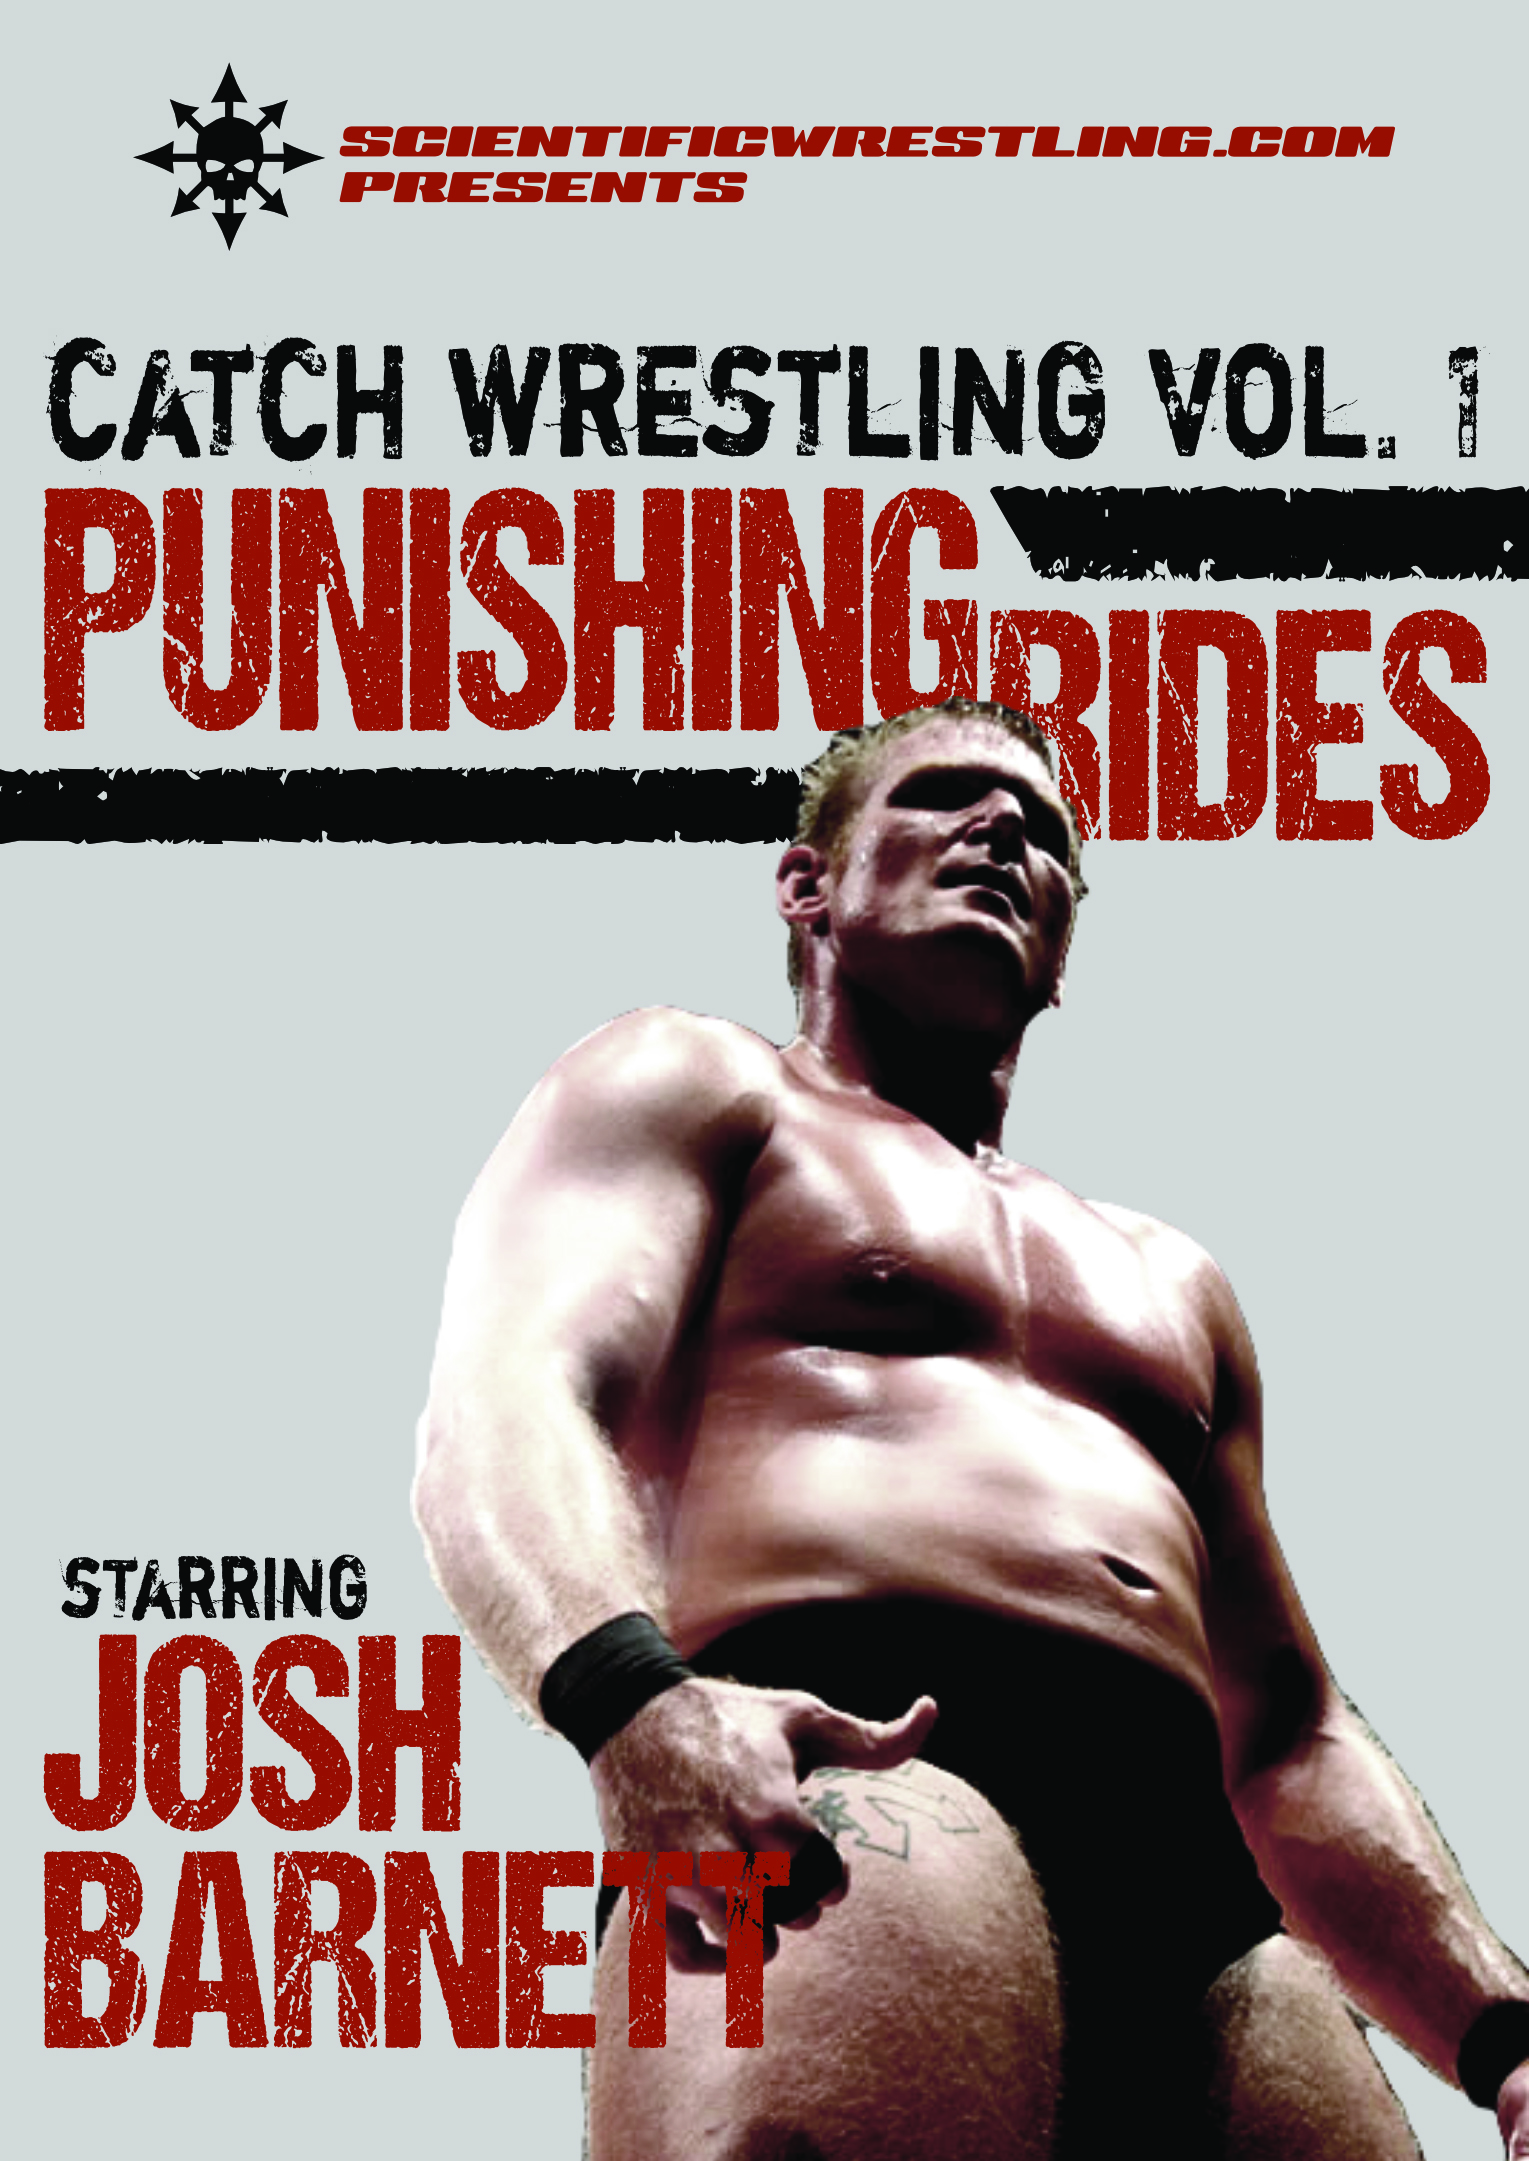 Josh Barnett's Catch Wrestling Vol. 1 - PUNISHING RIDES